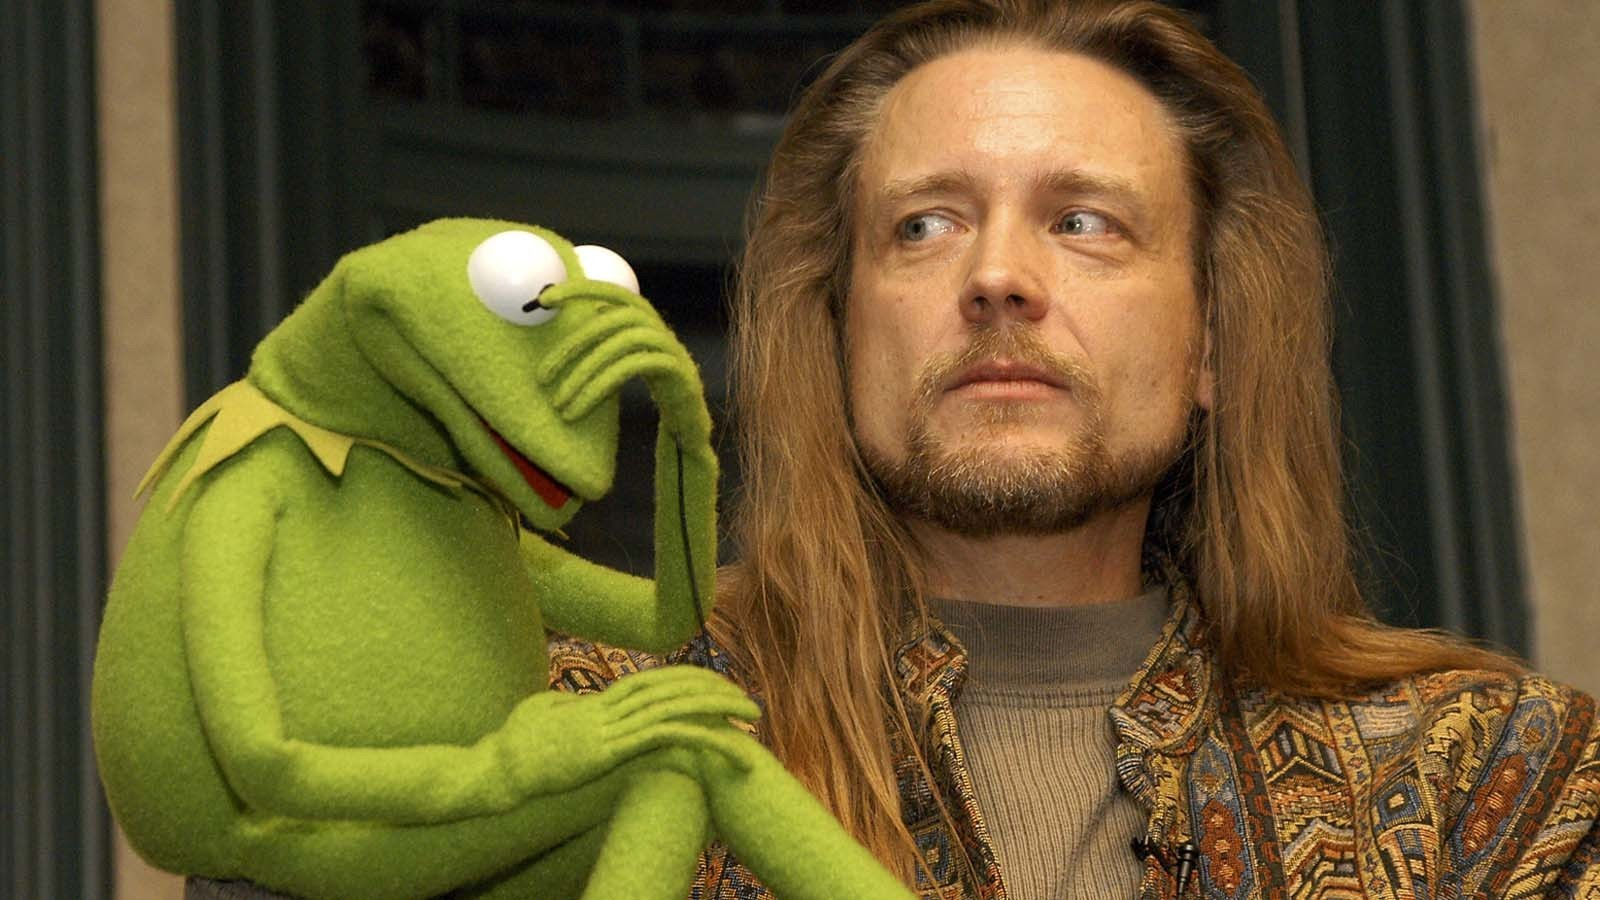 Steve Whitmire is shown with Kermit the Frog in 2003. (Lawrence Lucier / Getty Images)